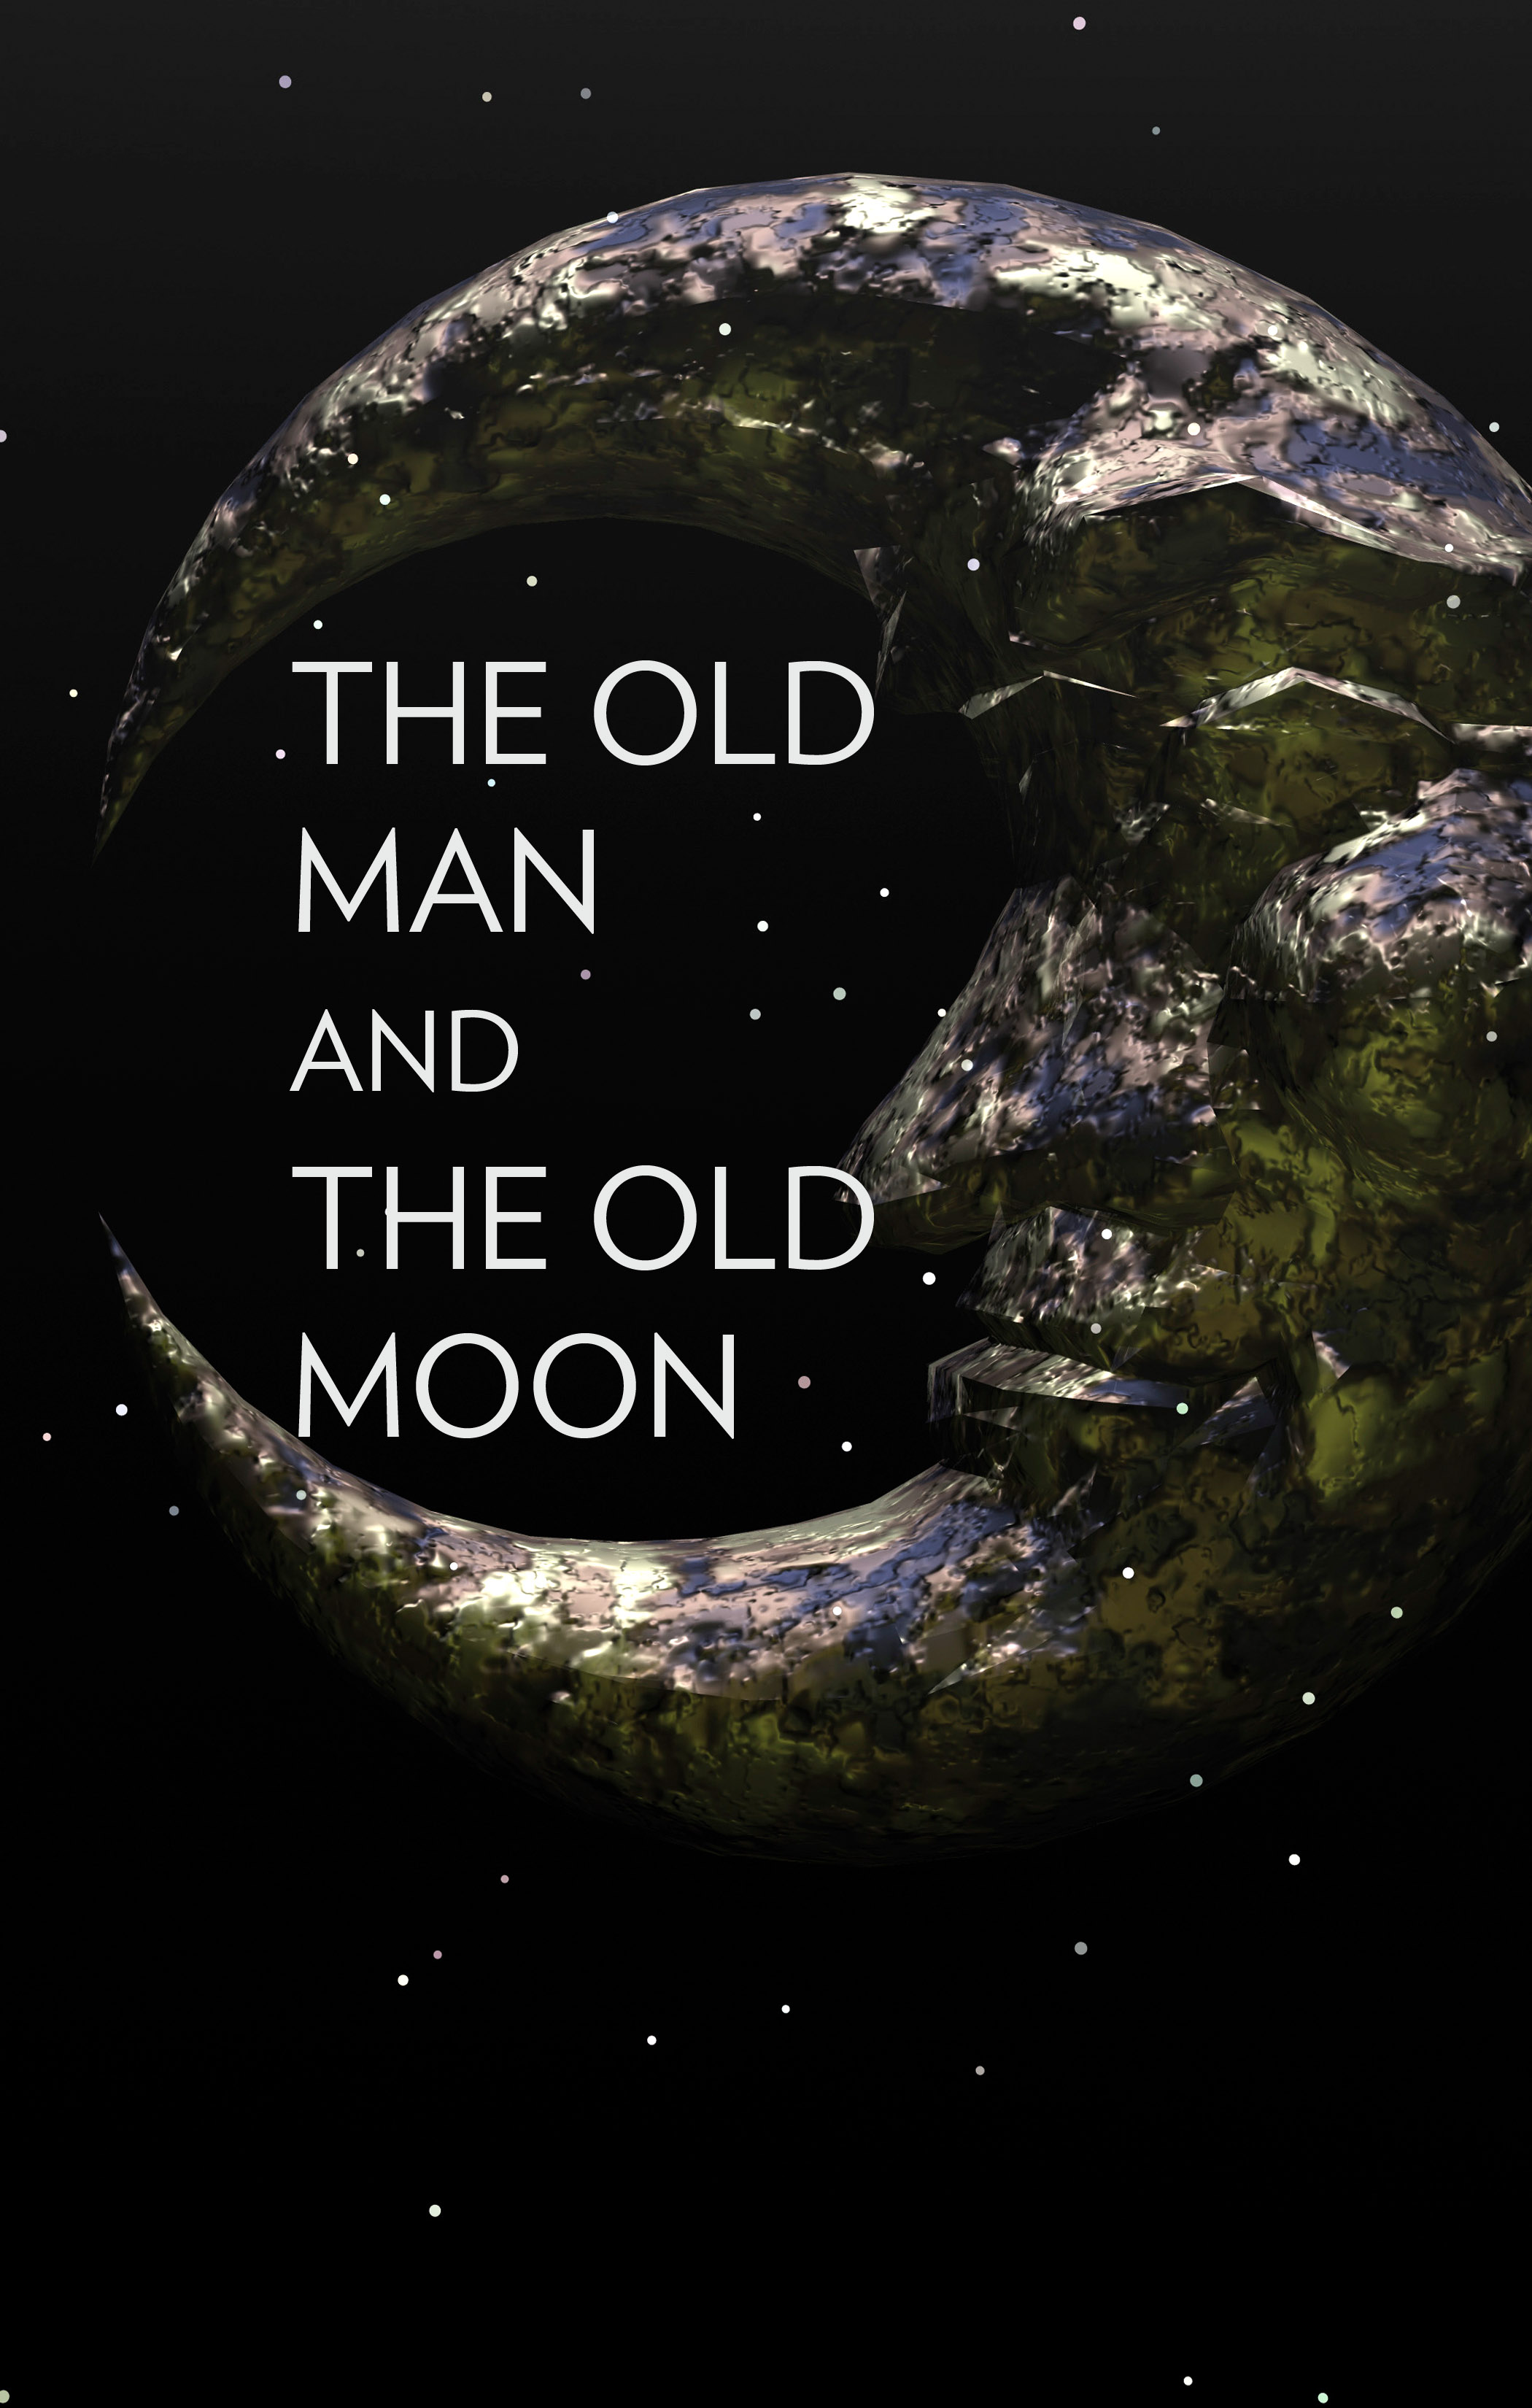 HSRT will present The Old Man and The Old Moon